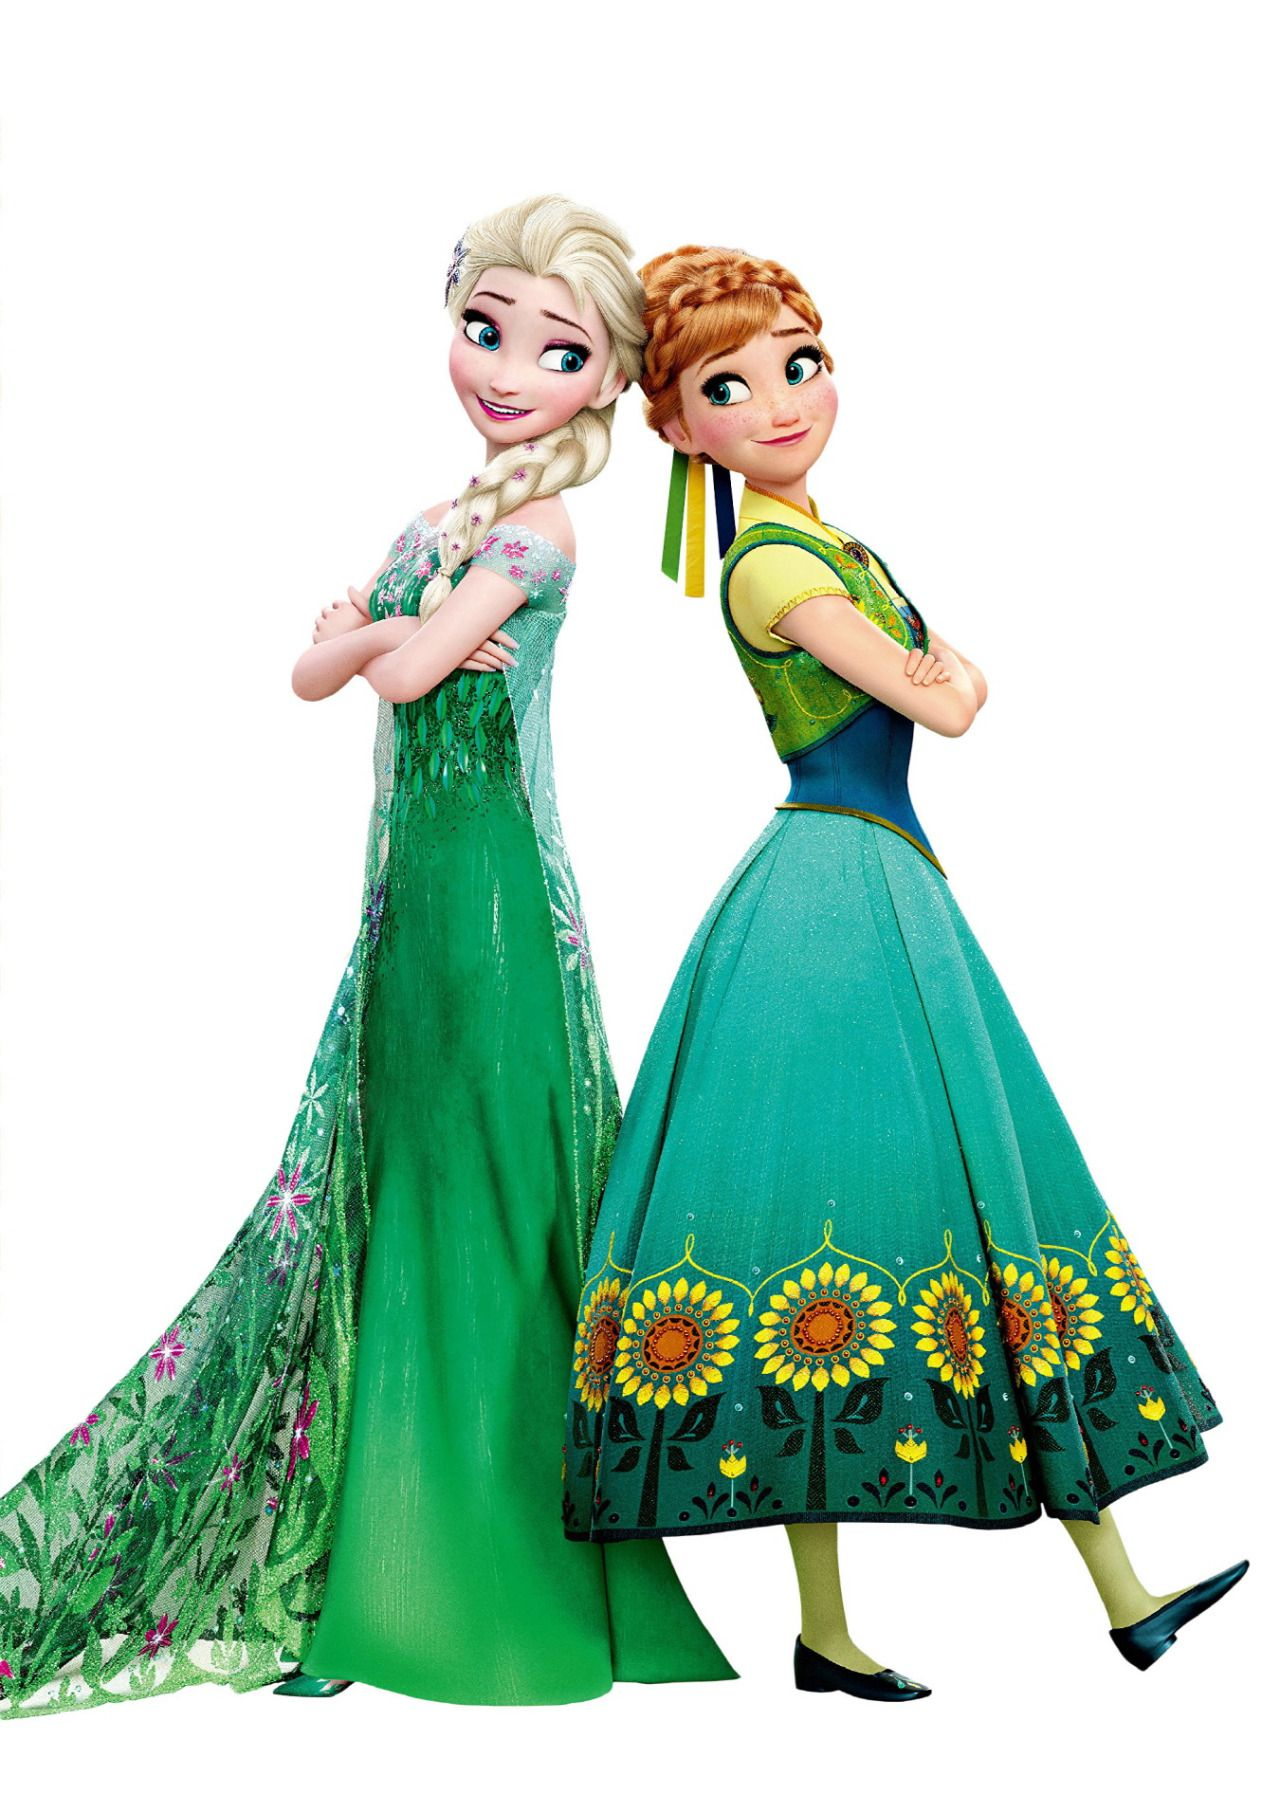 Anna and elsa in frozen fever frozen fever pinterest - Princesse frozen ...